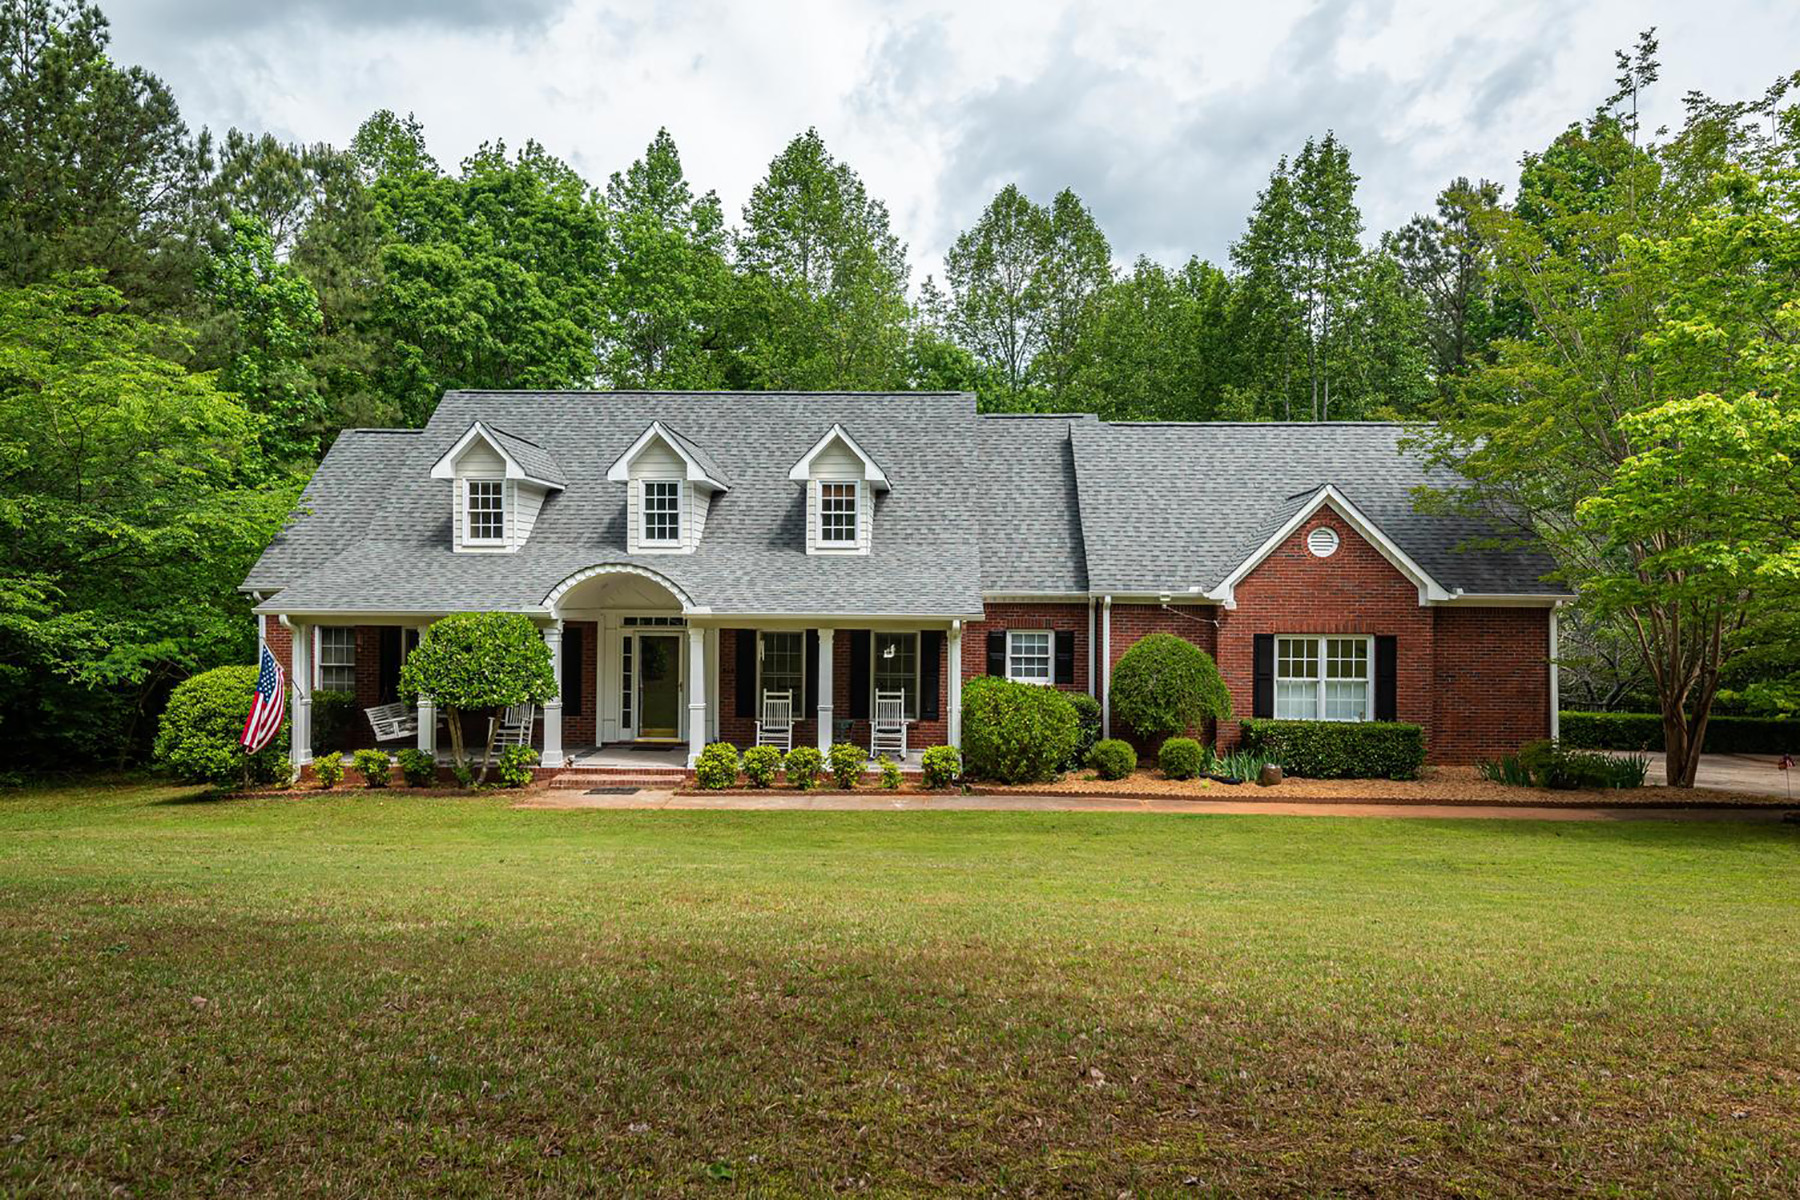 Single Family Homes for Sale at Private Lot on Three Plus Acres With Master On The Main And Pool 8168 Jenkins Road Winston, Georgia 30187 United States